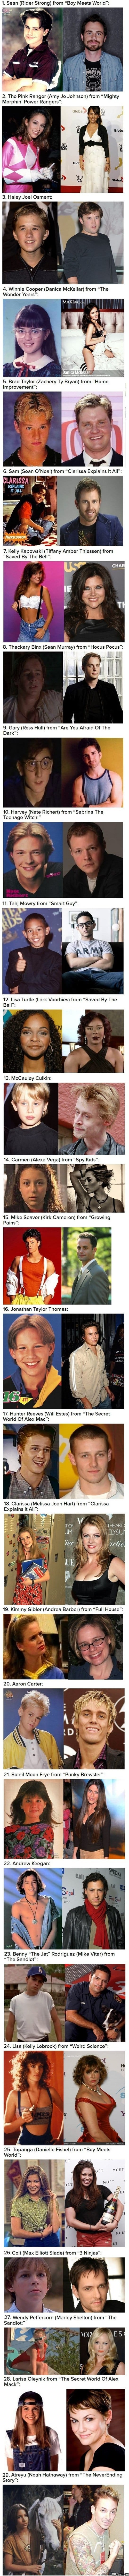 childhood-crushes-then-vs-now